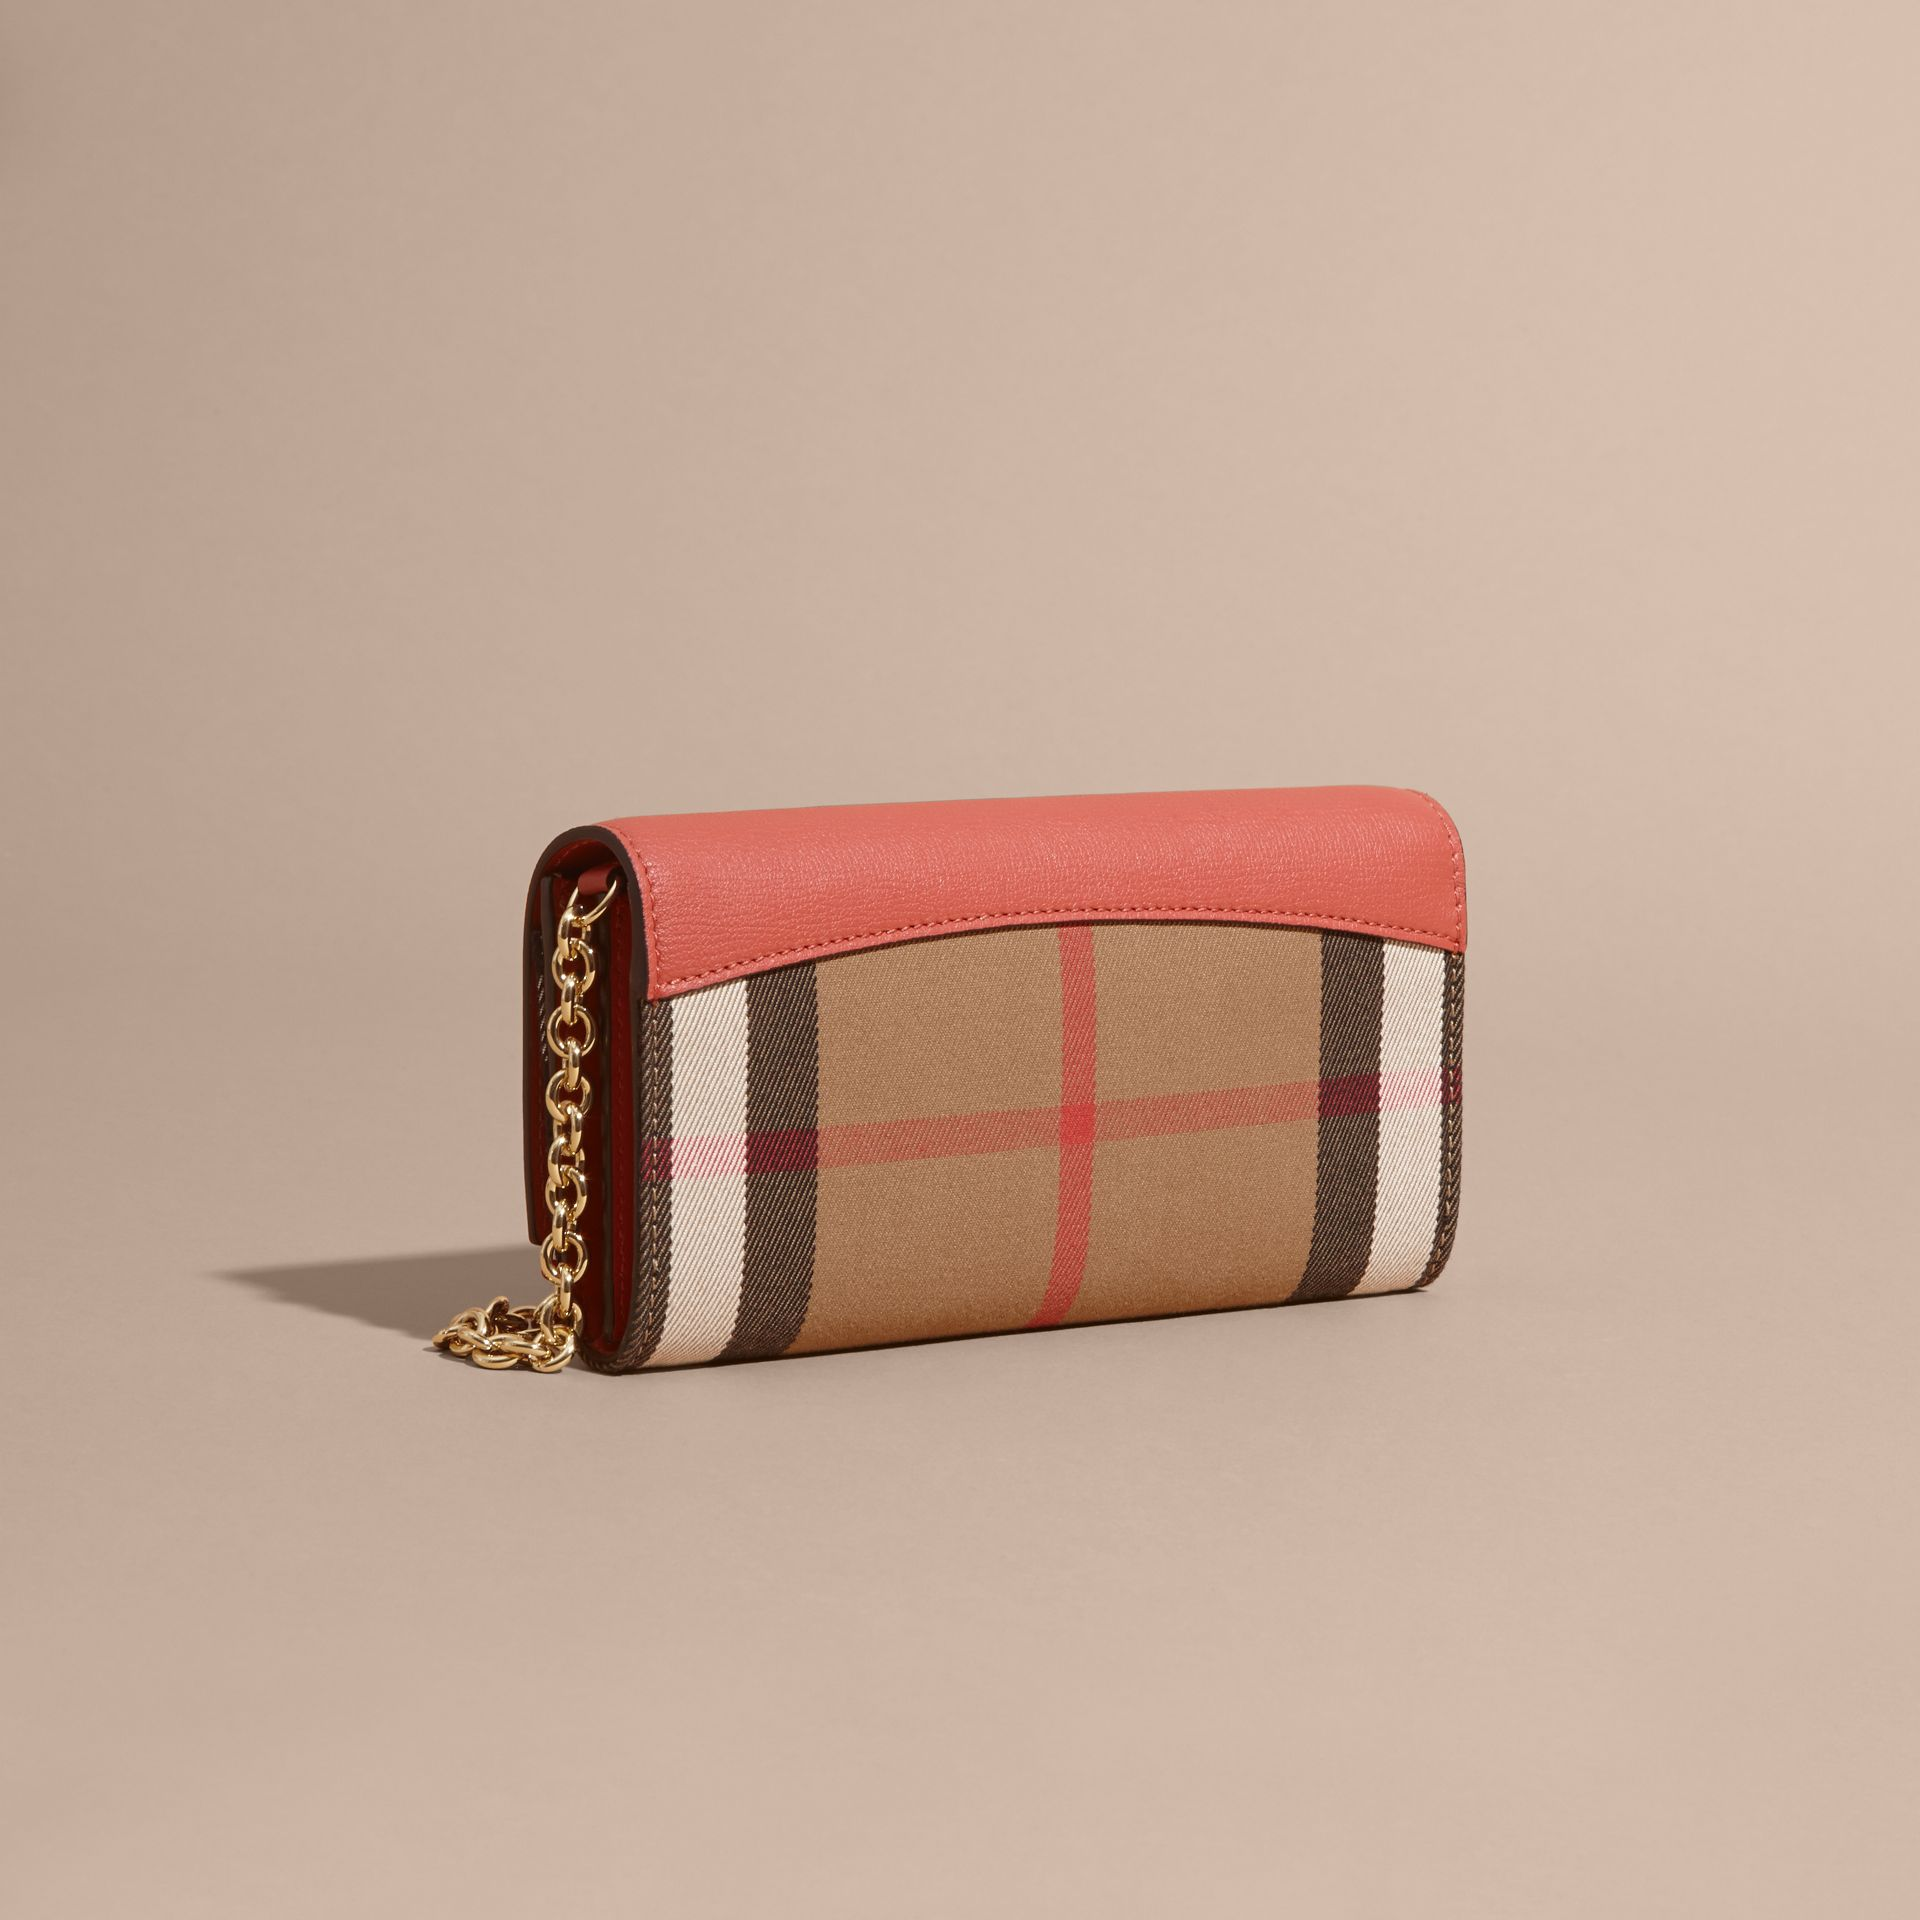 House Check and Leather Wallet with Chain in Cinnamon Red - Women | Burberry - gallery image 5